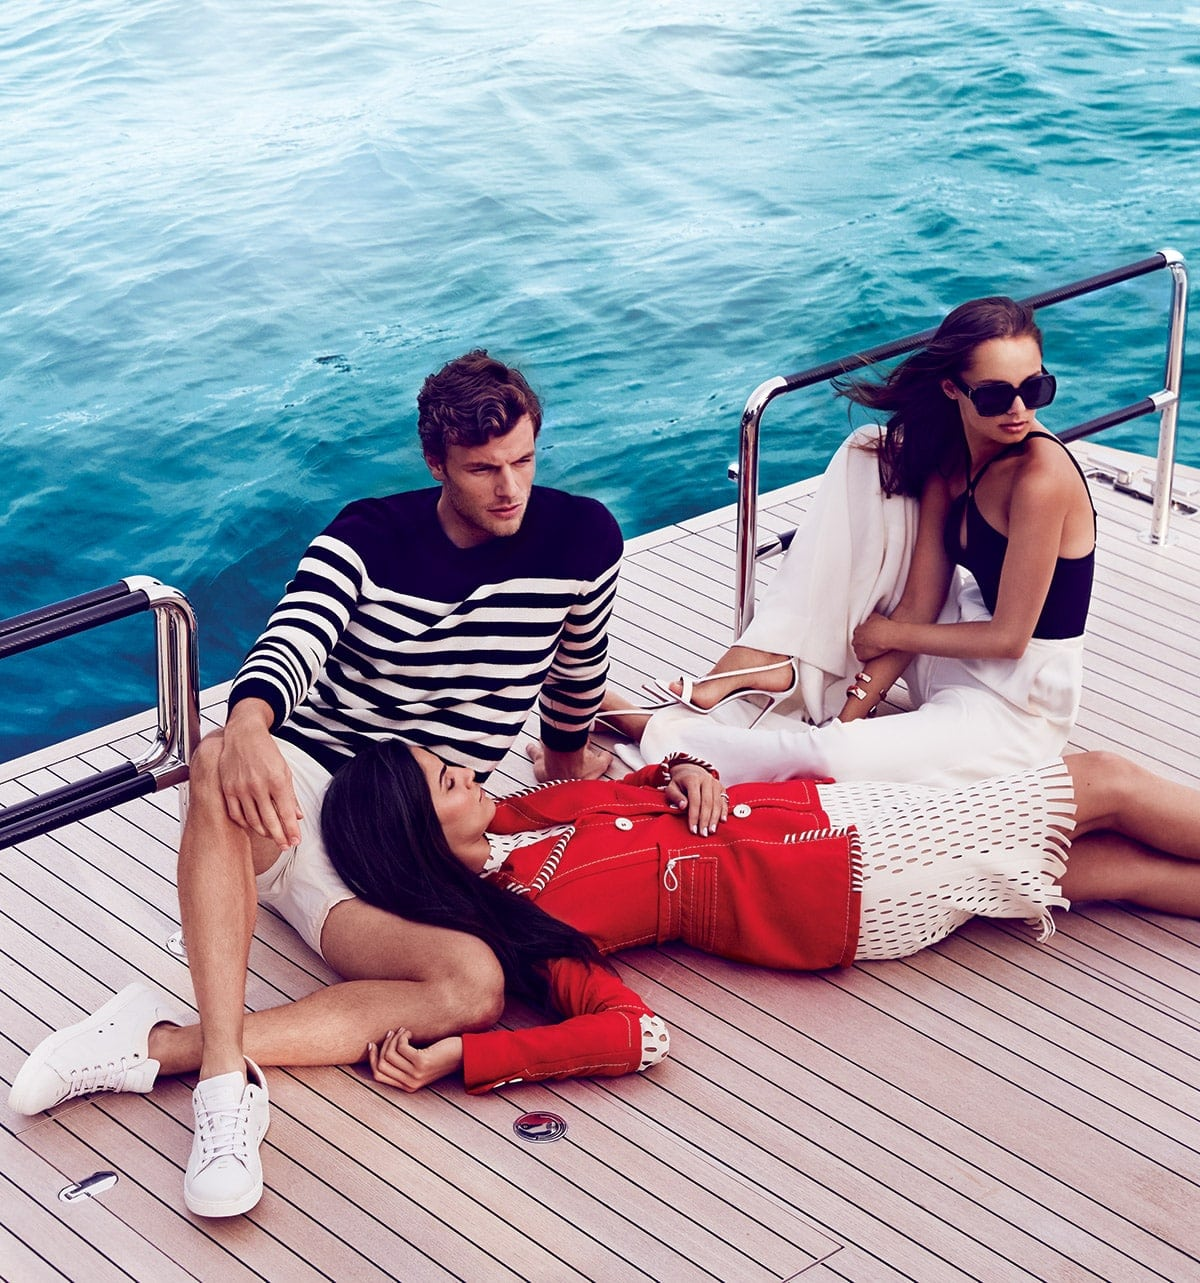 Sailing-fashion-7.jpg